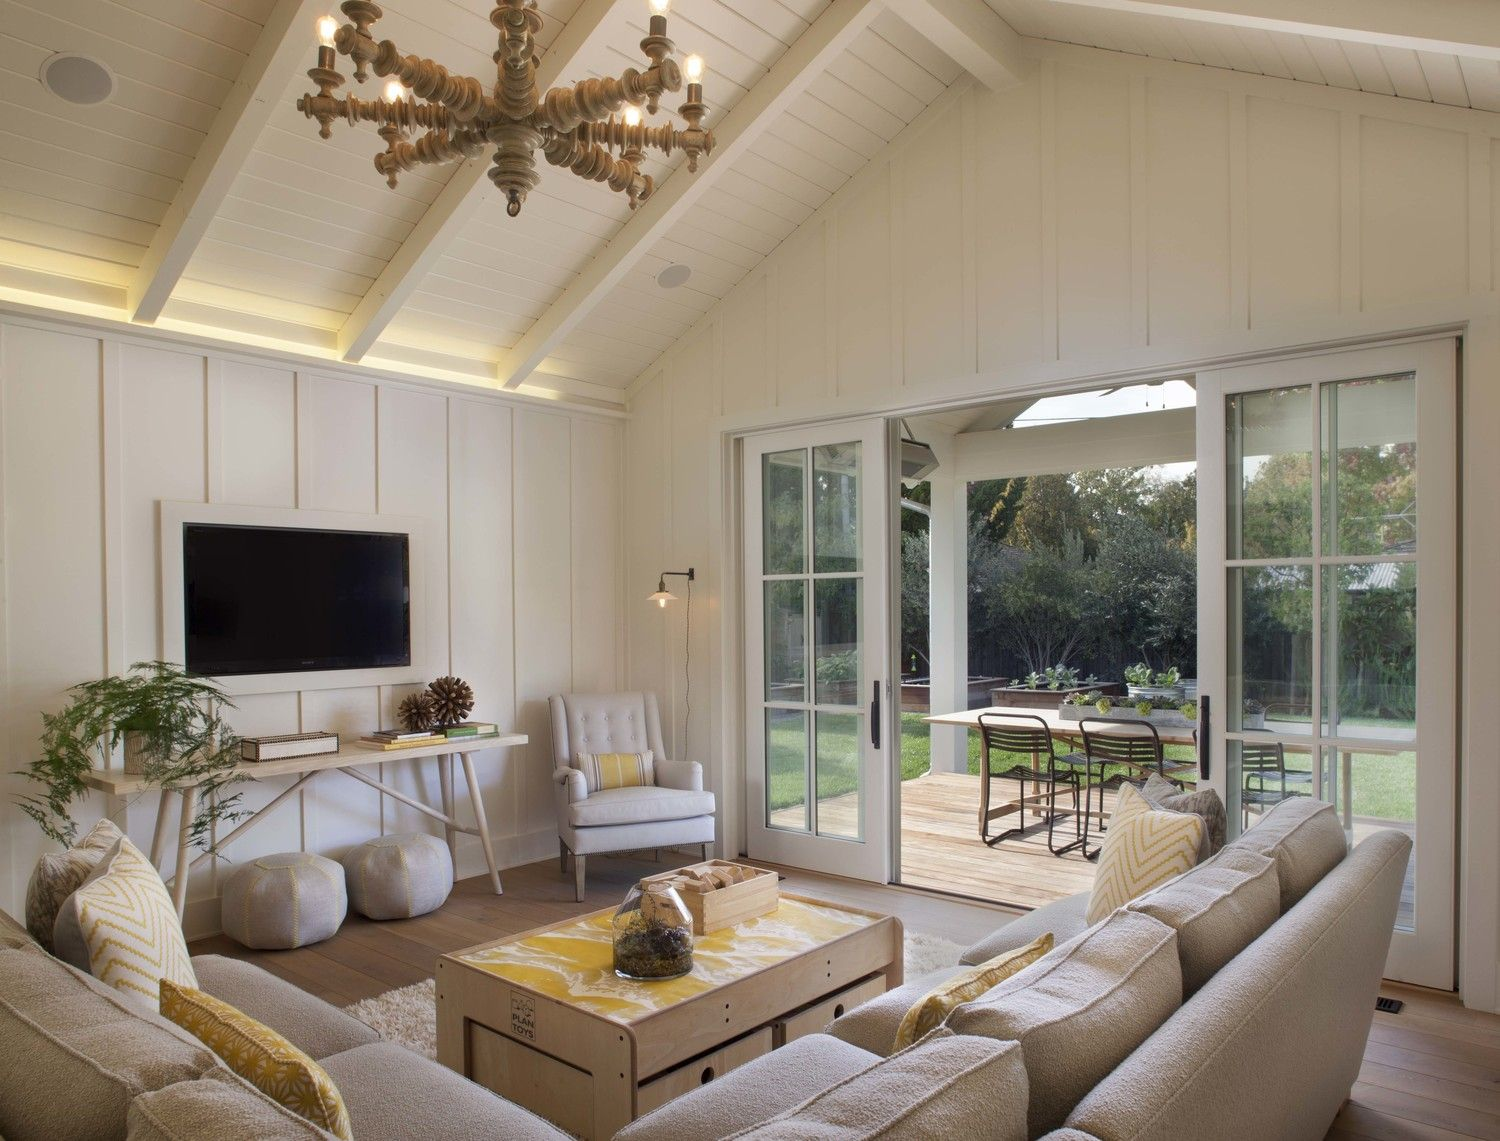 Best Modern Farmhouse Family Room 2 Bring The Outdoors In 640 x 480